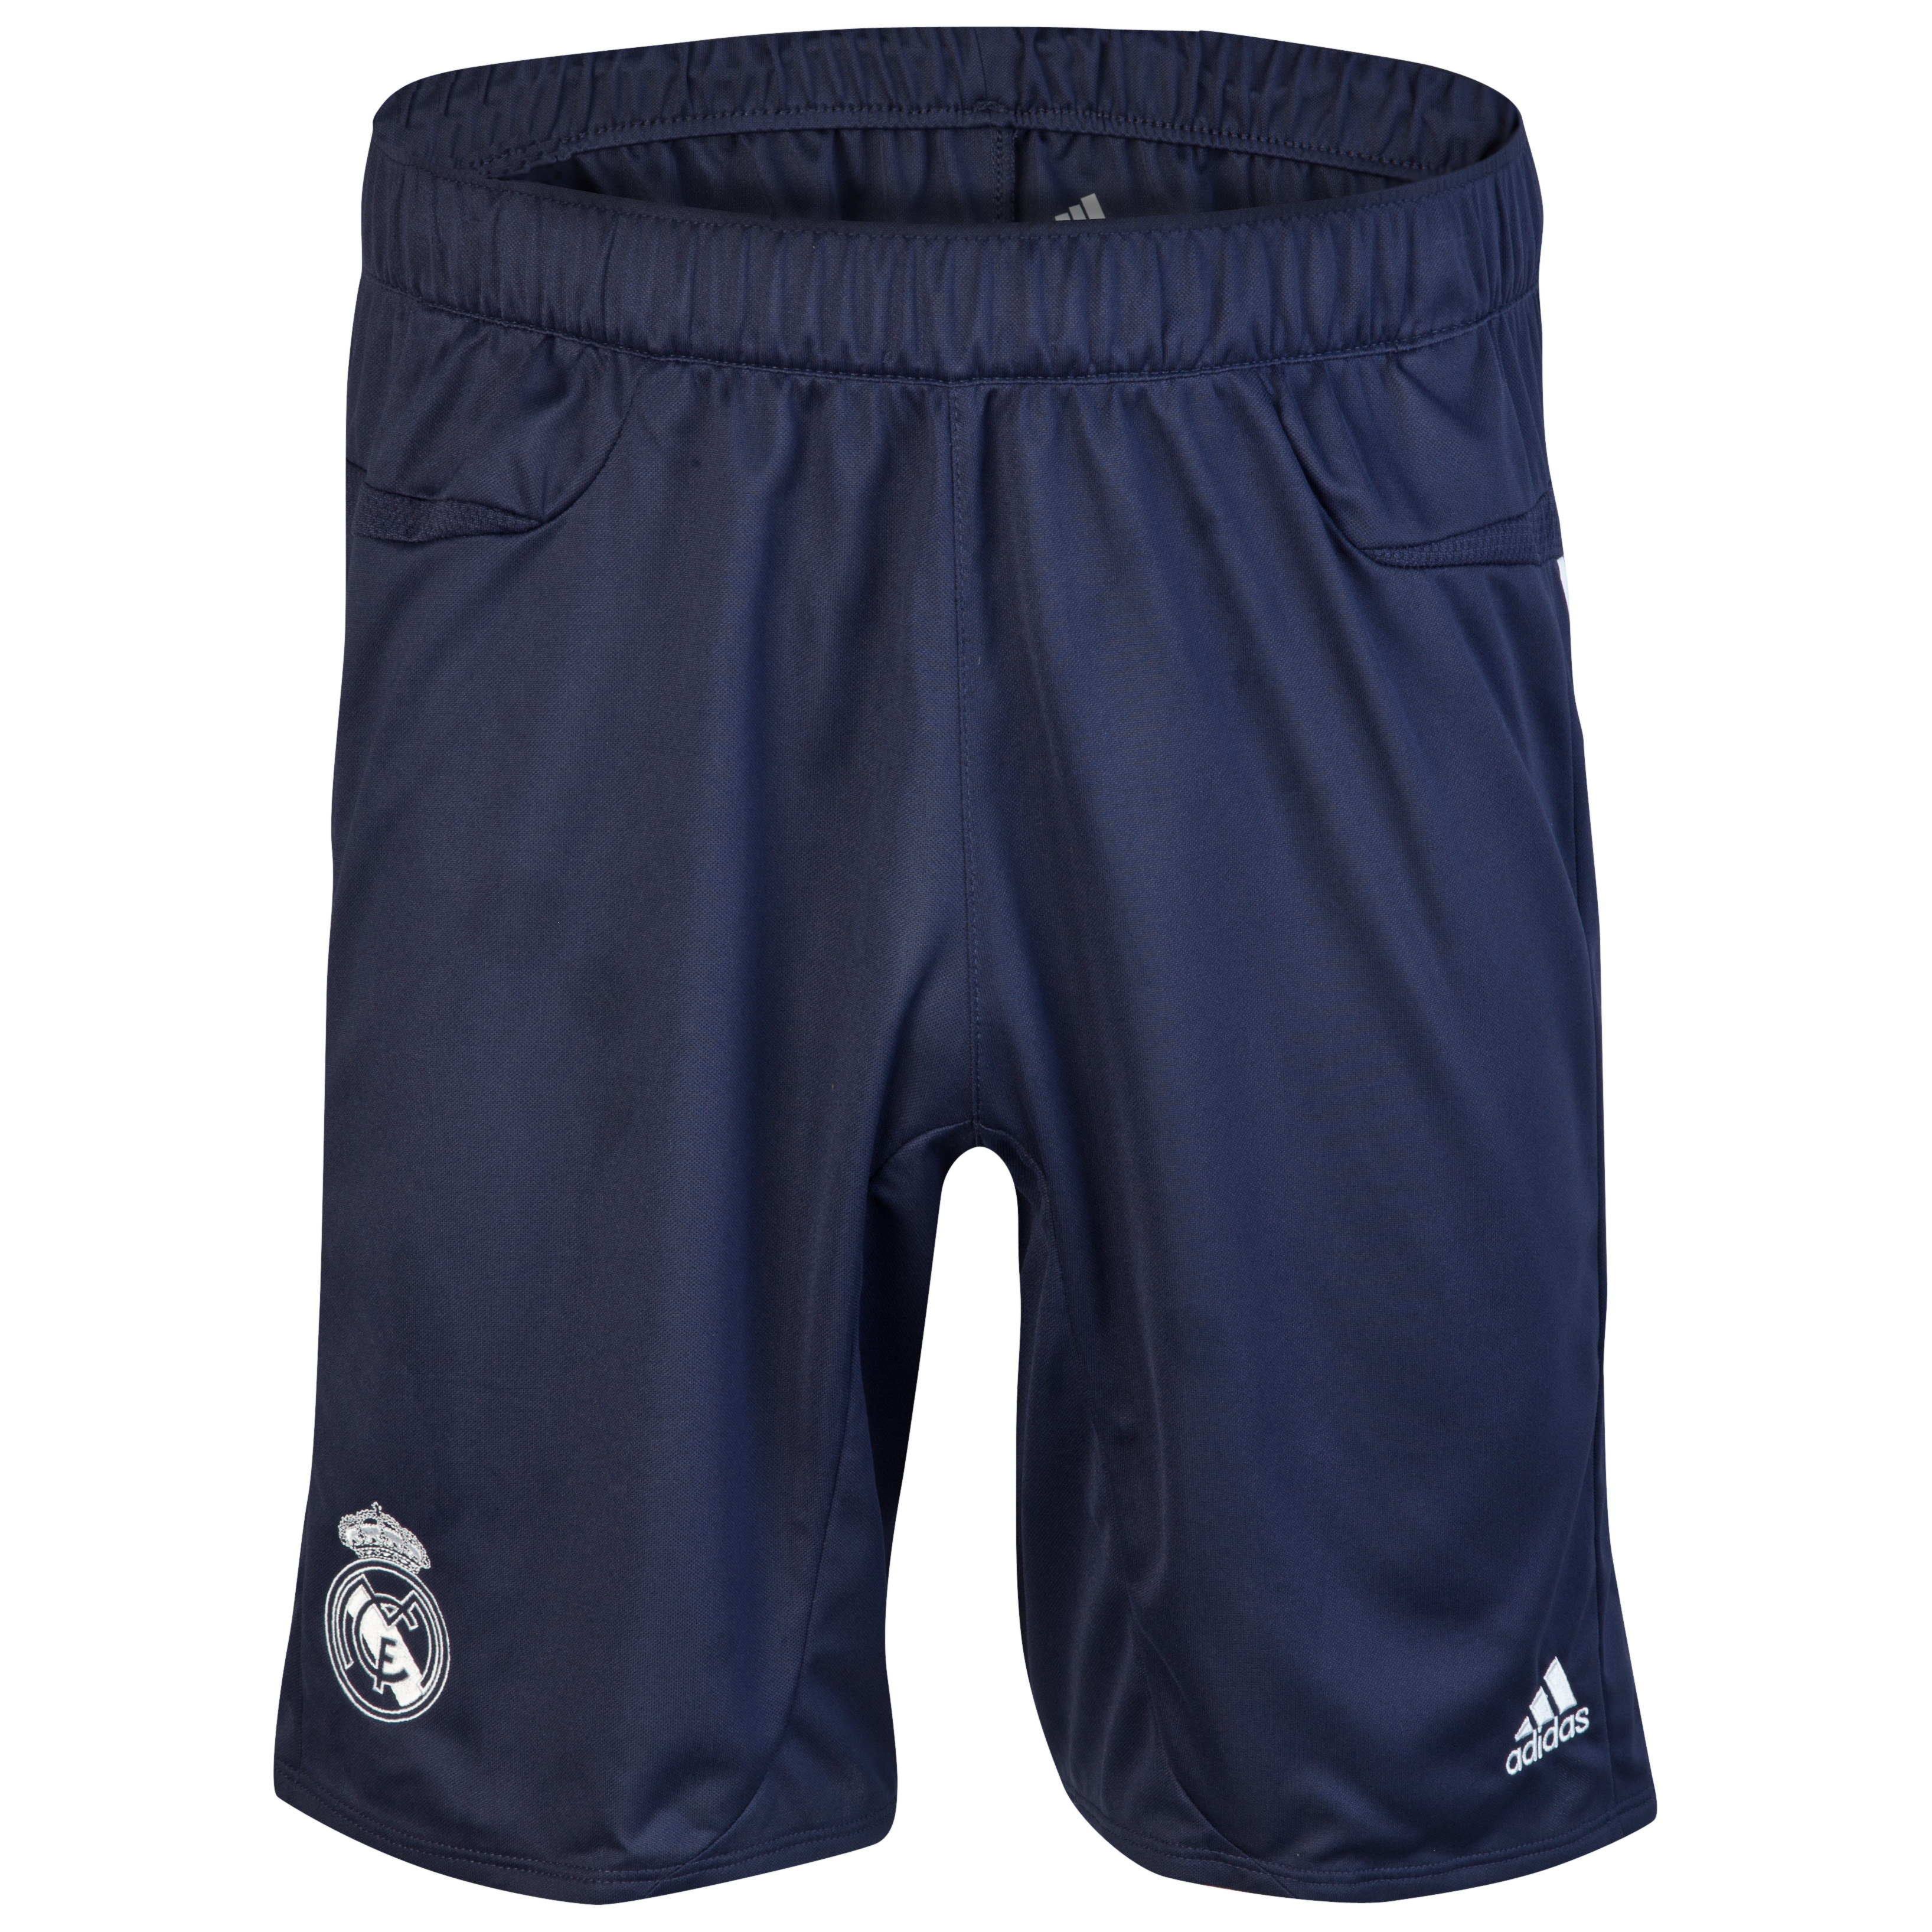 Real Madrid Training Short - Noble Ink/White